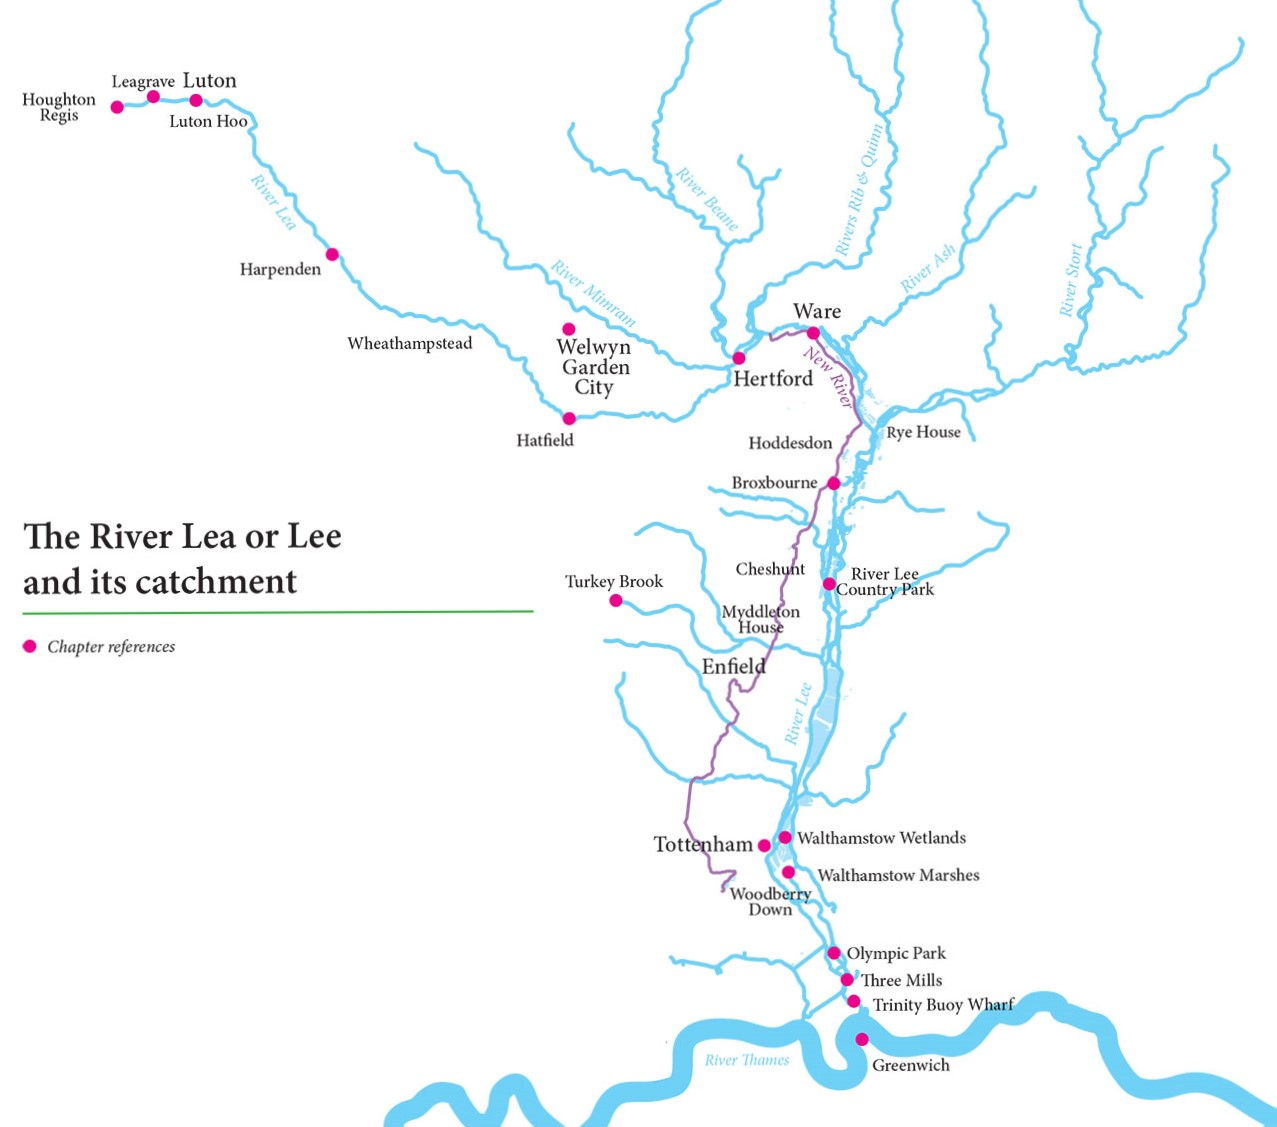 The River Lea or Lee and its catchment 2